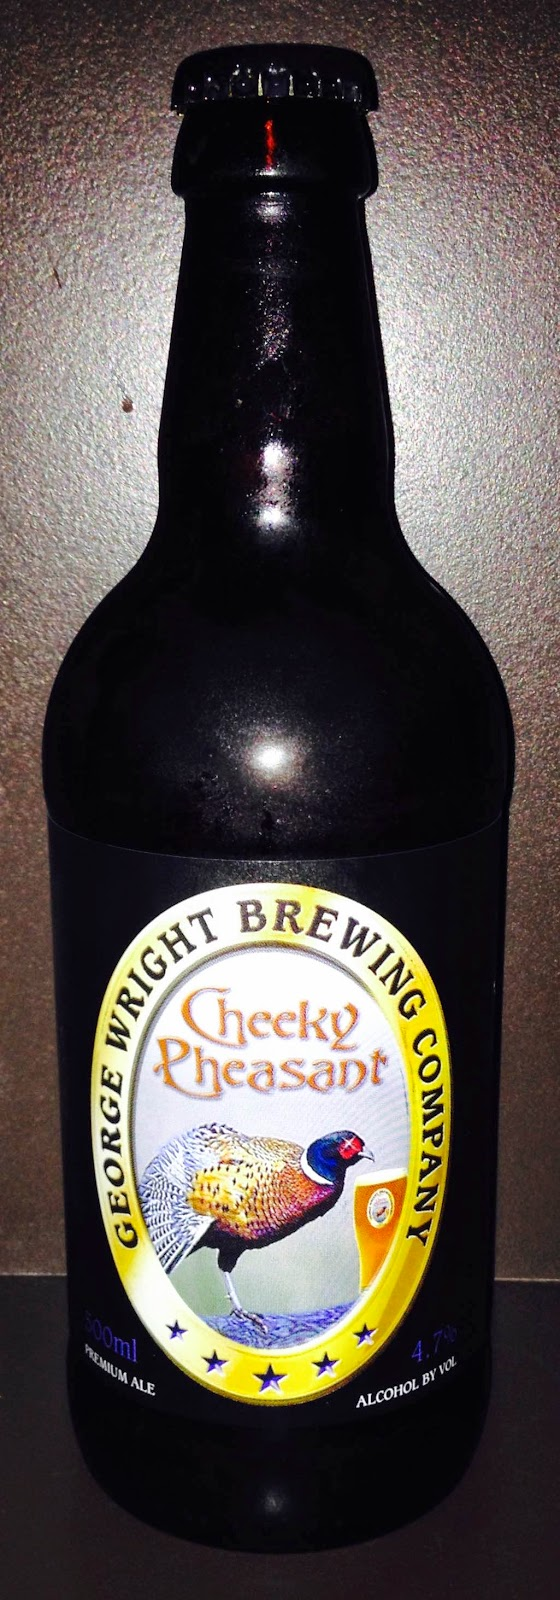 Cheeky Pheasant (George Wright Brewing Company)